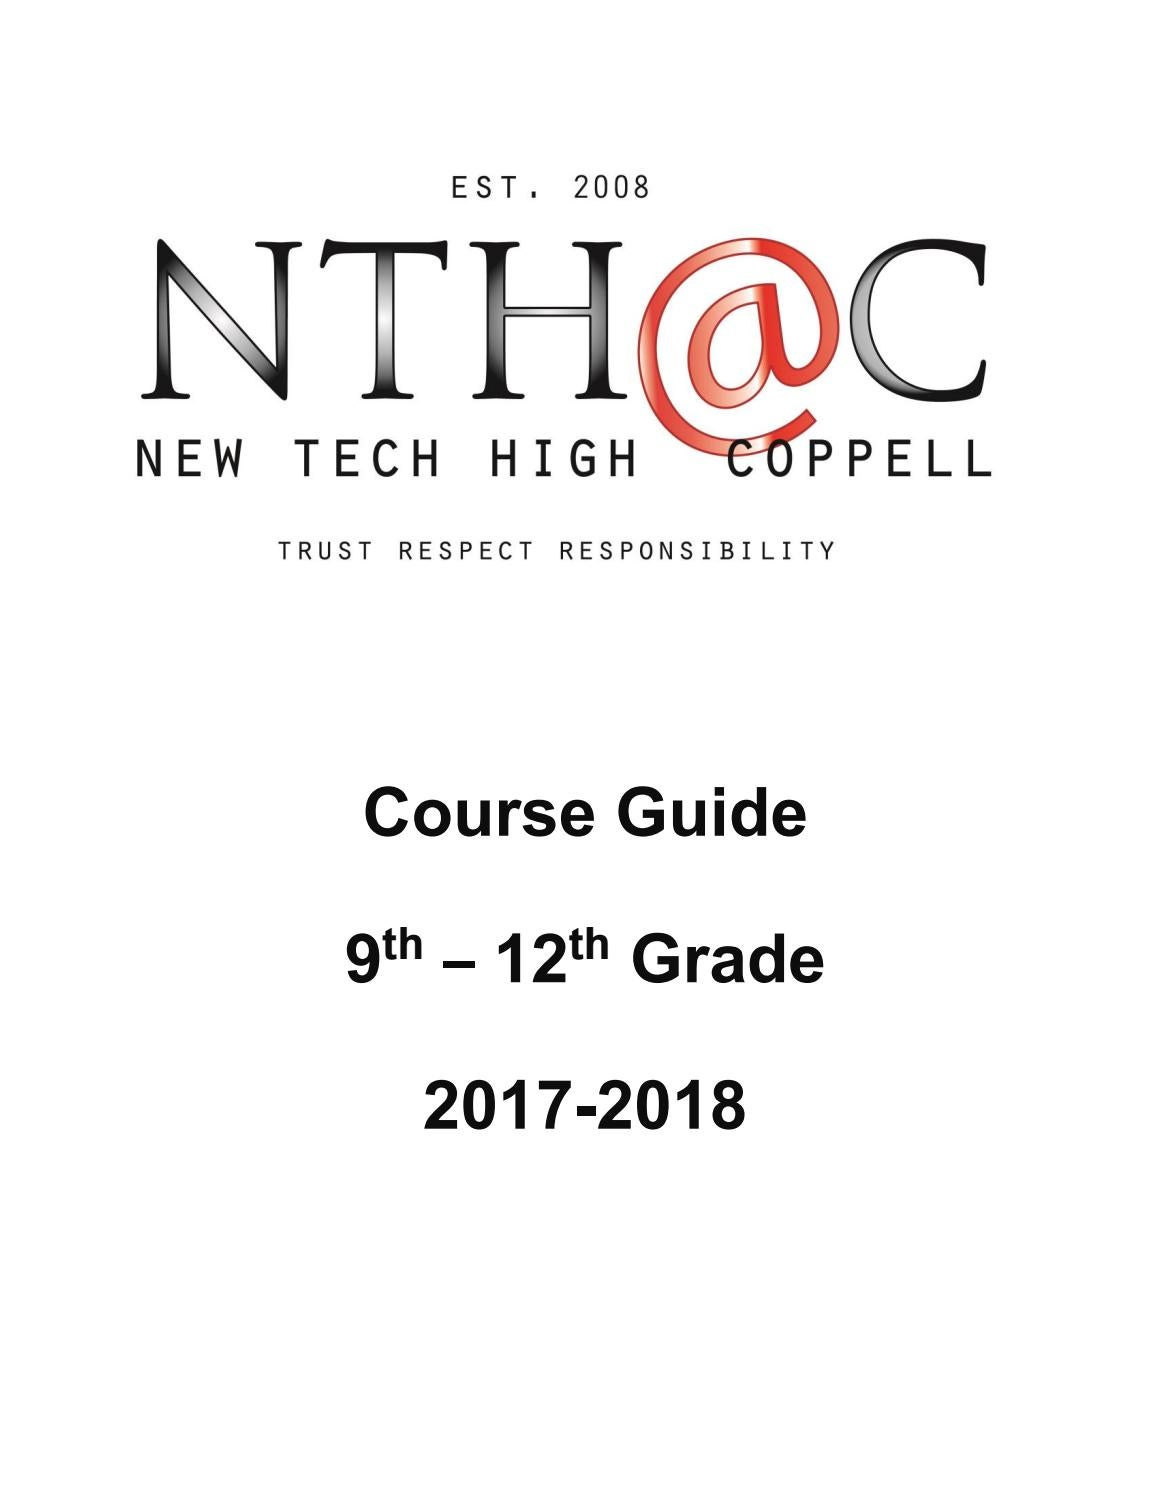 NTH@C 2017-2018 Course Guide by New Tech High @ Coppell